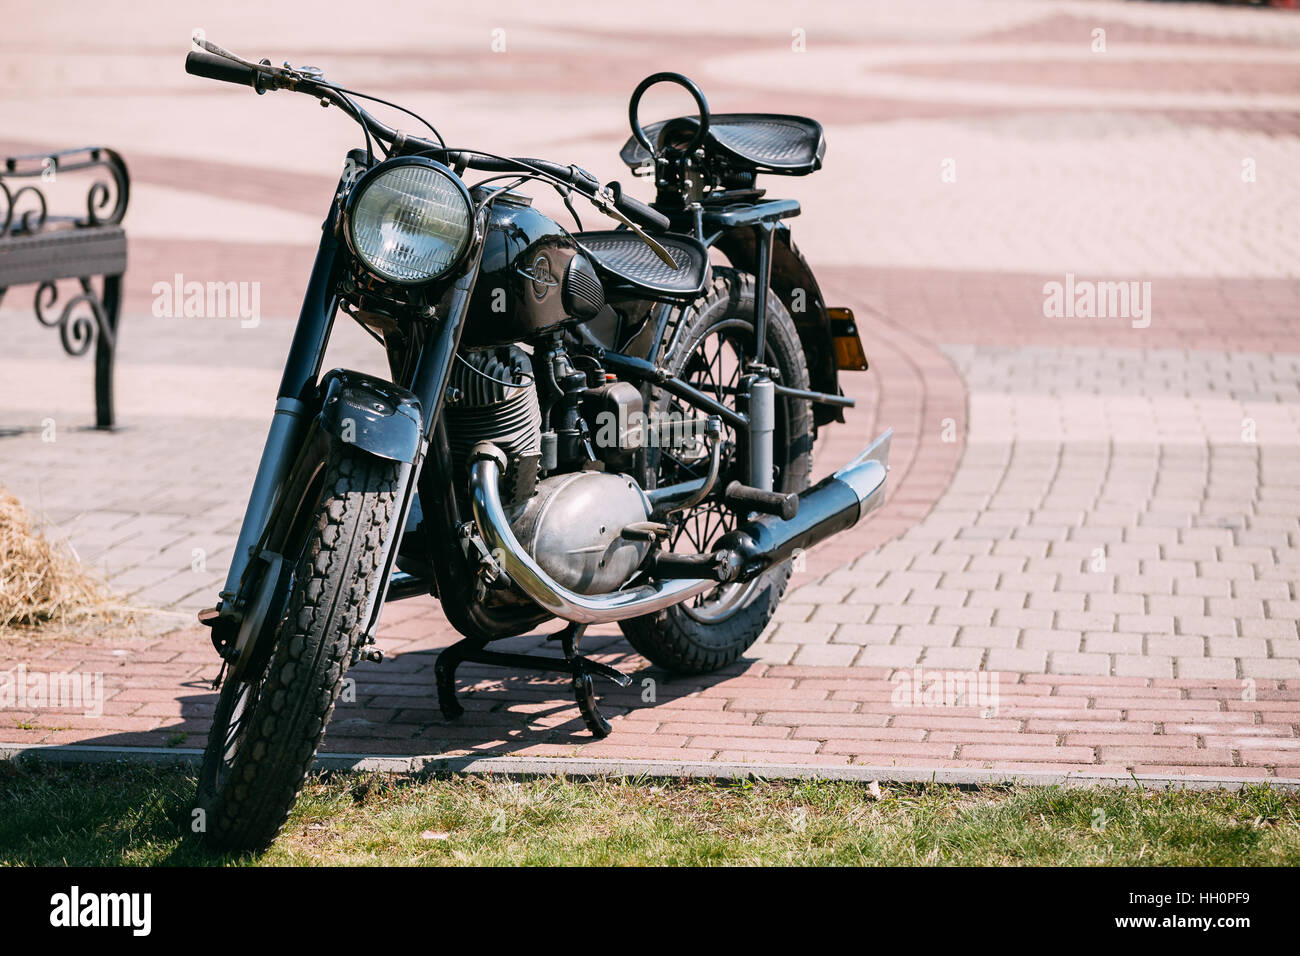 Gomel, Belarus - May 9, 2016: IZH-49, The Old Rarity Soviet Road Two-Wheeled Black Motorcycle, Standing On The Pavement - Stock Image